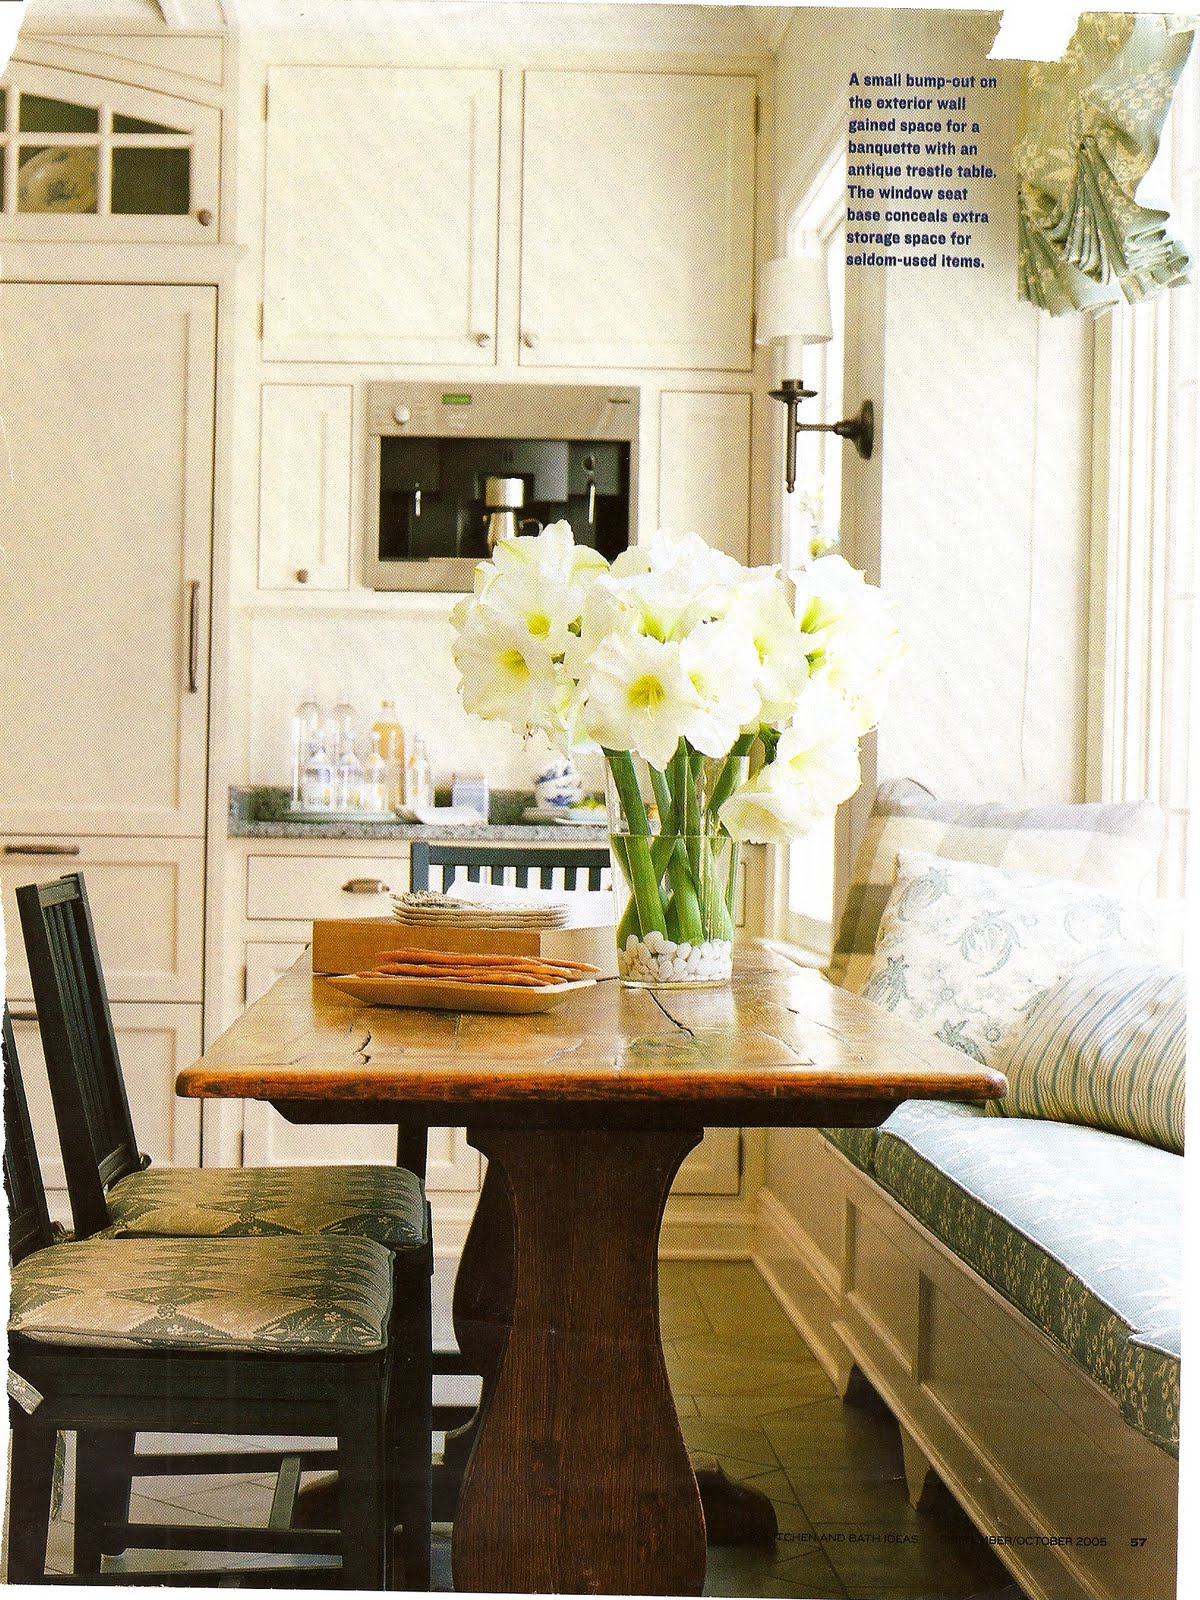 Suzeday tuesday kitchens belclaire house Kitchen breakfast table designs